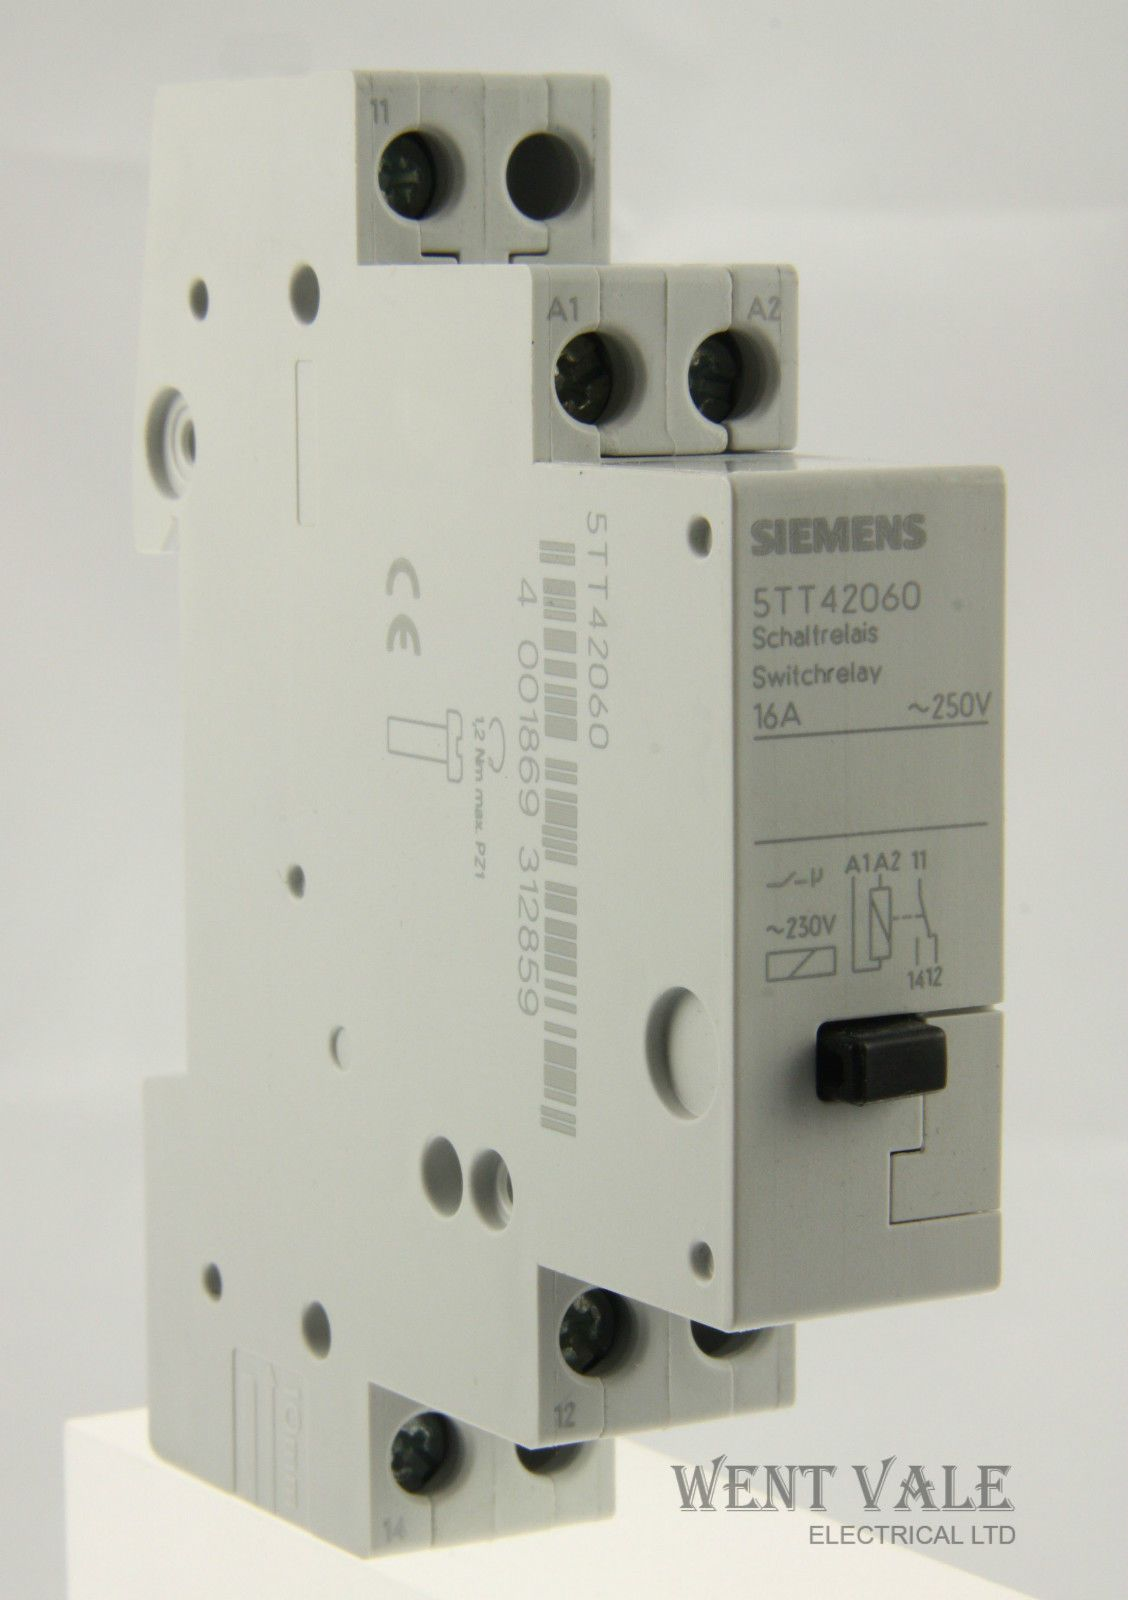 Siemens 5TT42060 - 16a SPDT DIN Rail Panel Mount Non-Latching Relay ...